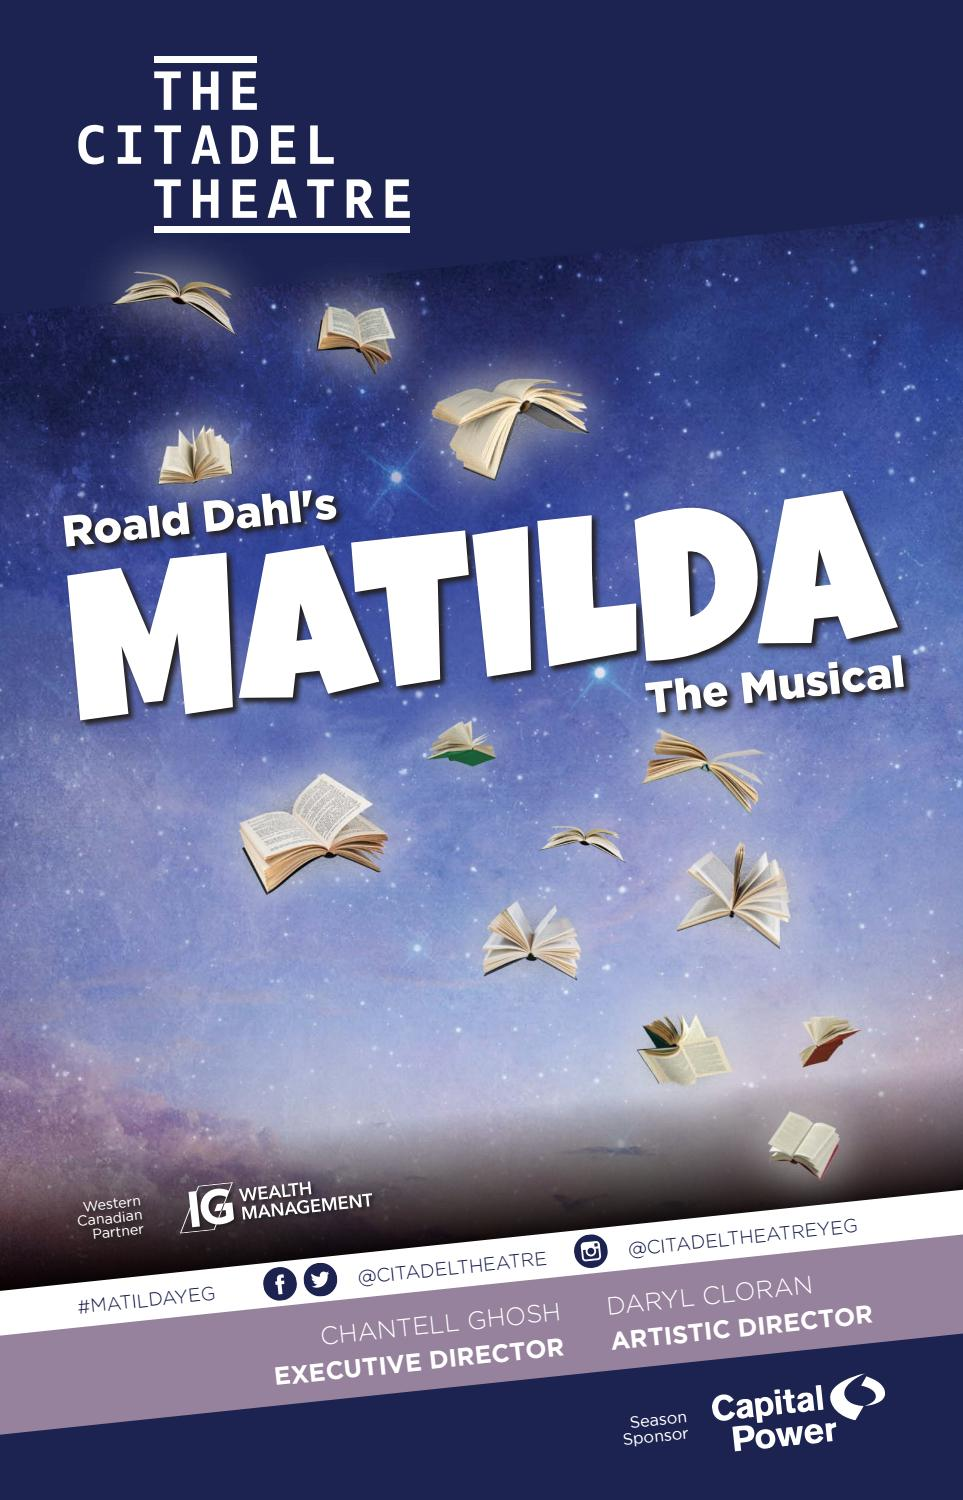 The Citadel Theatre playbill - Matilda The Musical by